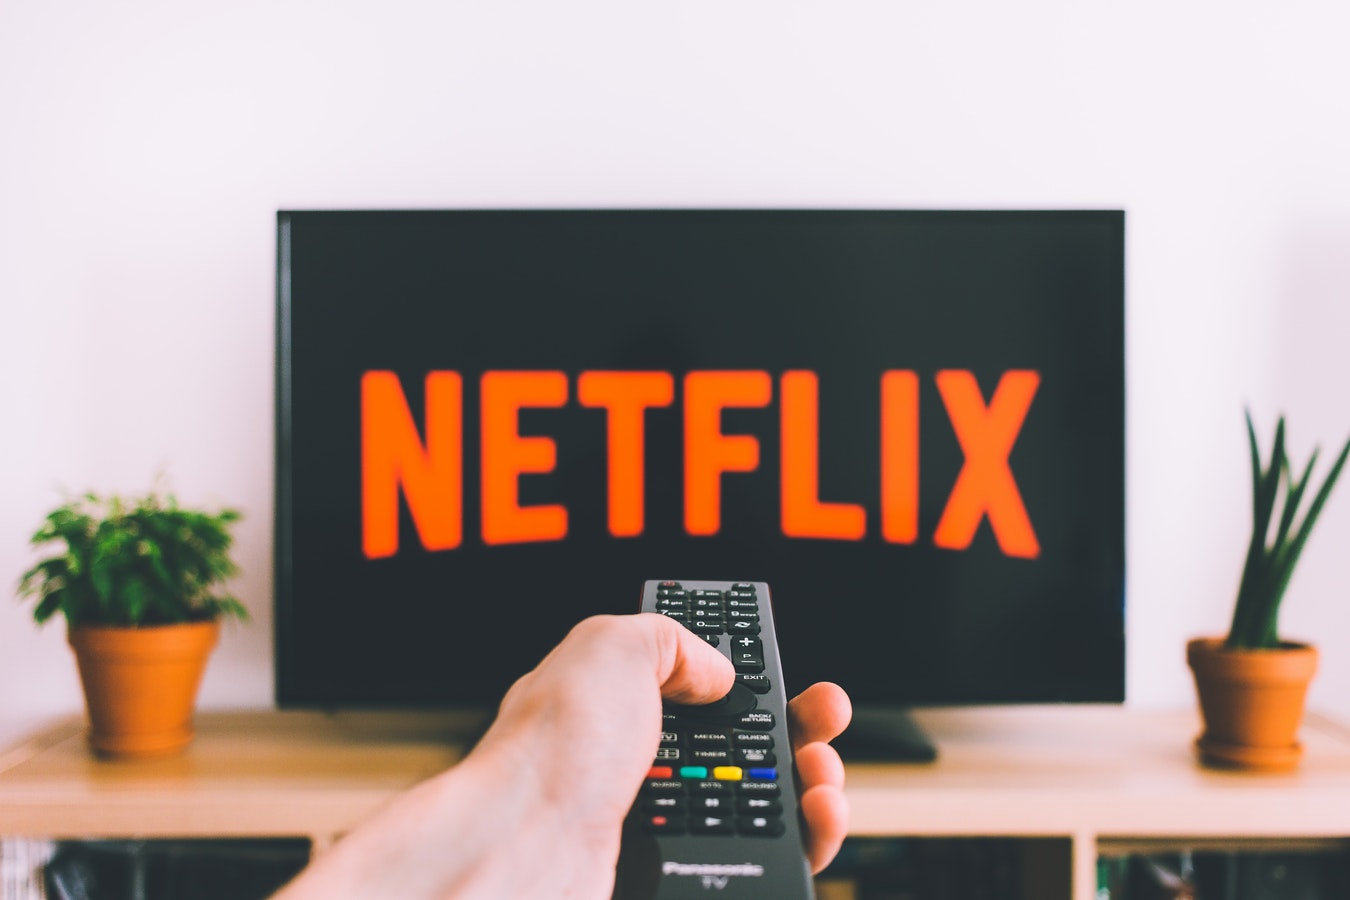 Lecciones que podemos aprender del marketing digital de Netflix